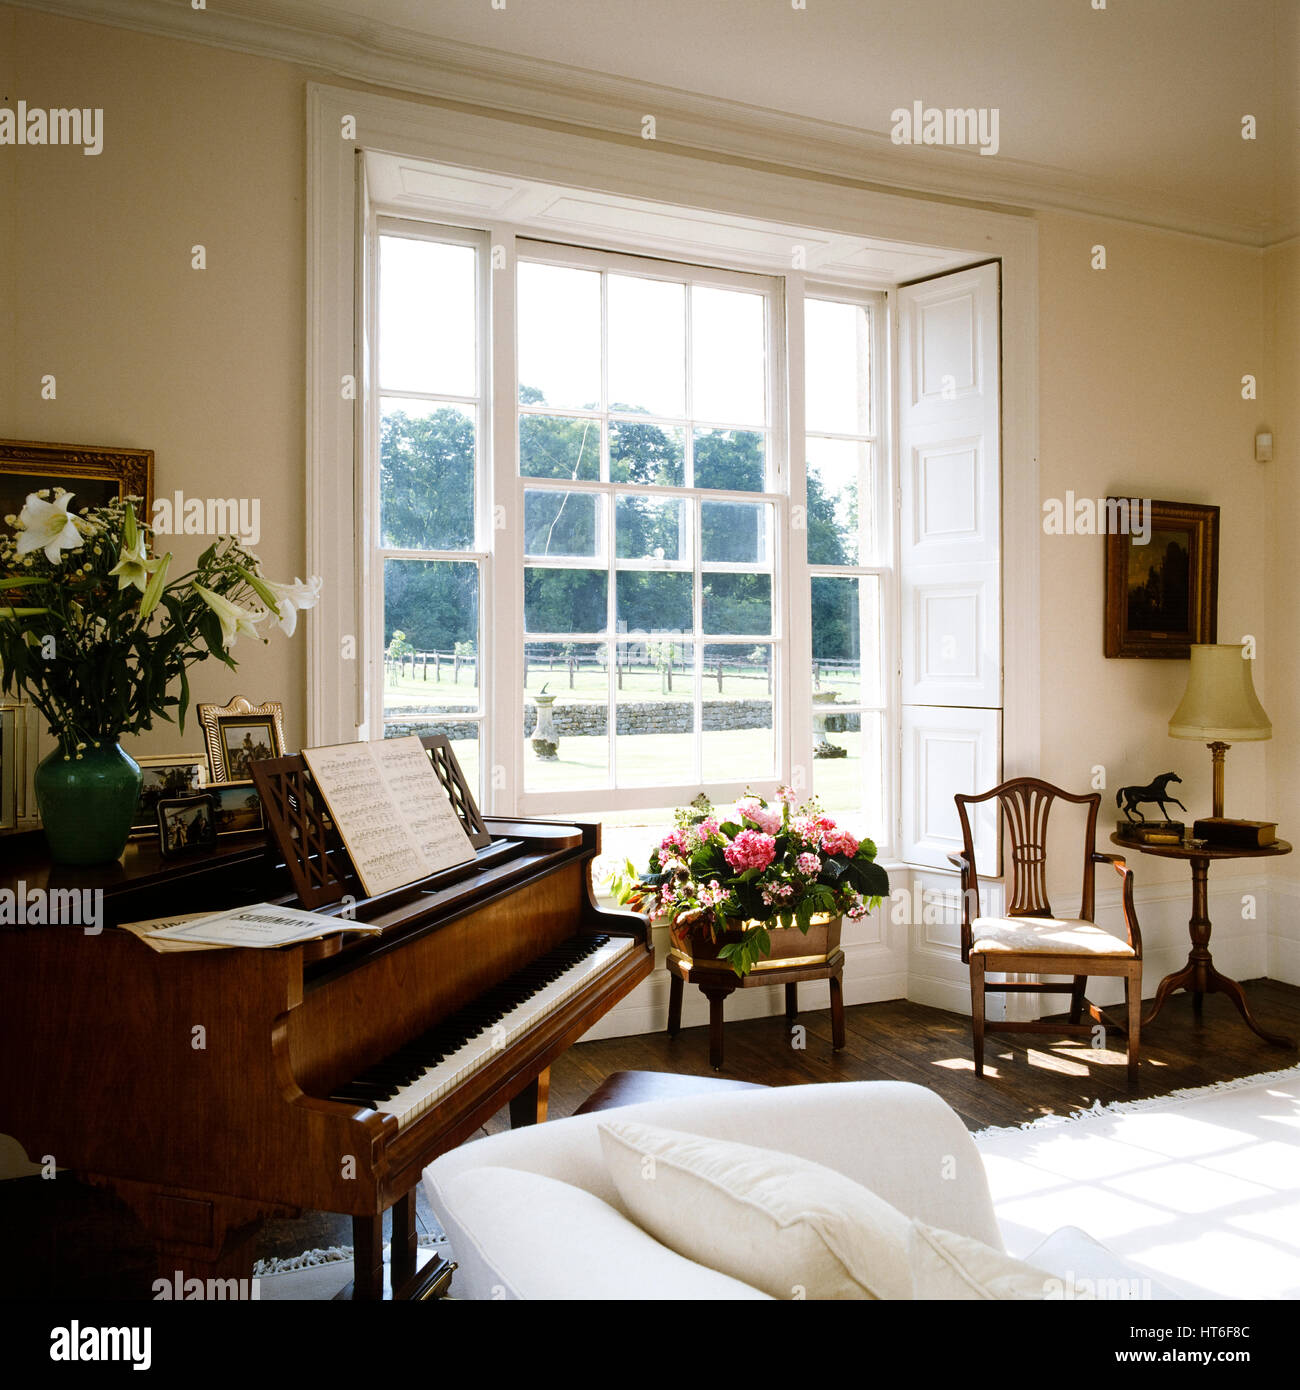 Piano In Living Room.   Stock Image